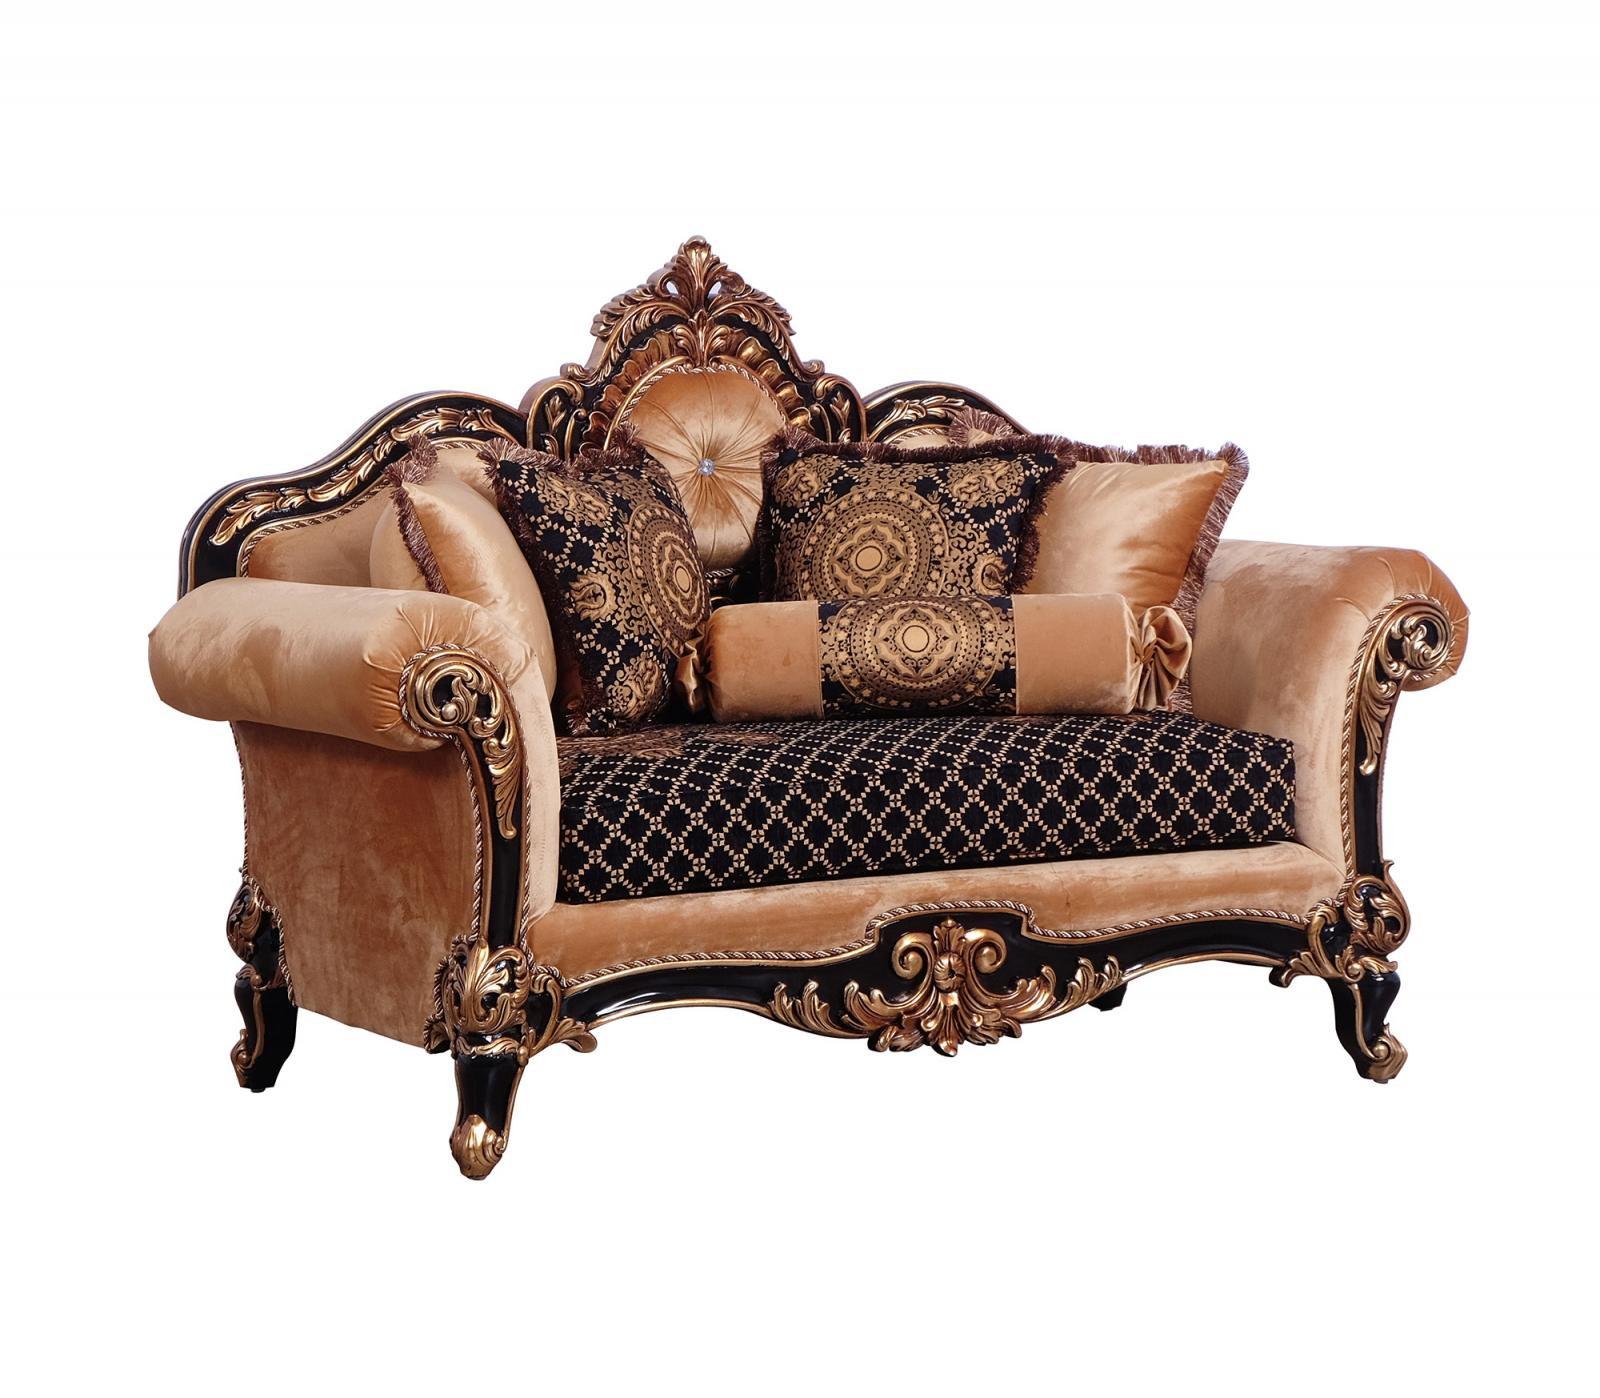 Classic  Traditional Gold  Silver  Antique   Black Wood  Solid Hardwood and Fabric Loveseat EUROPEAN FURNITURE 41024-L